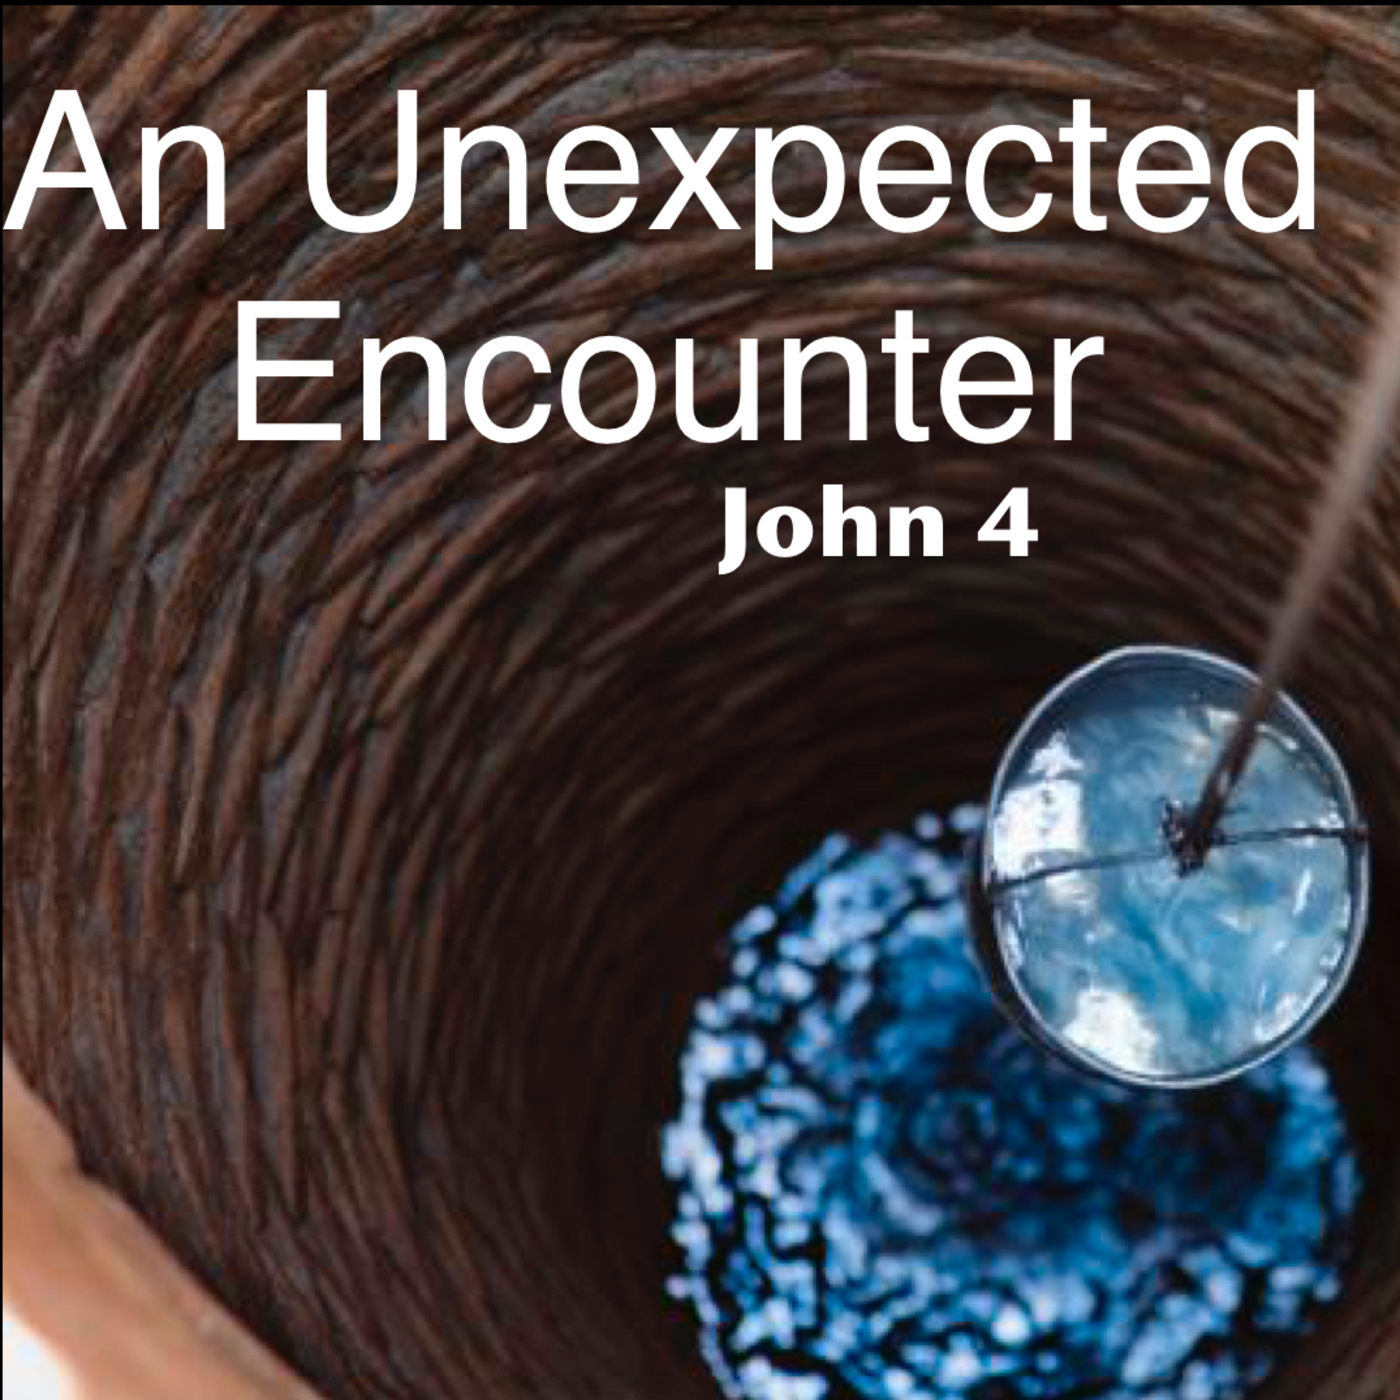 an unexpected encounter 2018-10-1 this page was last edited on 5 april 2017, at 19:18 content is available under cc by-nc-sa 30 unless otherwise noted game content and materials are trademarks and copyrights of their respective publisher and its licensors.